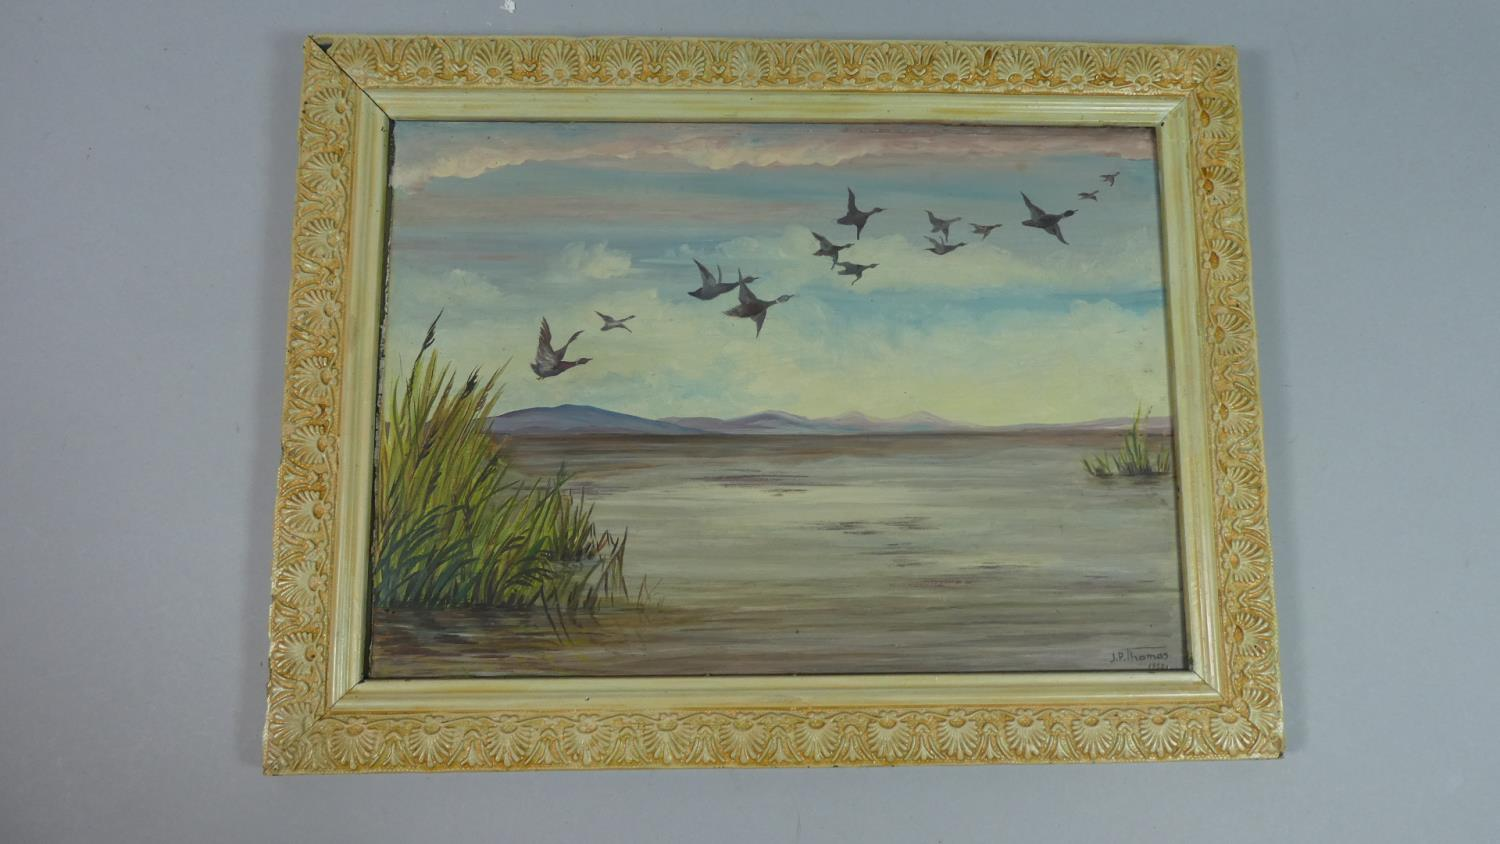 Lot 128 - A Framed Oil on Glass Depicting Ducks in Flight, Signed J P Thomas, 1955, 33cm Wide